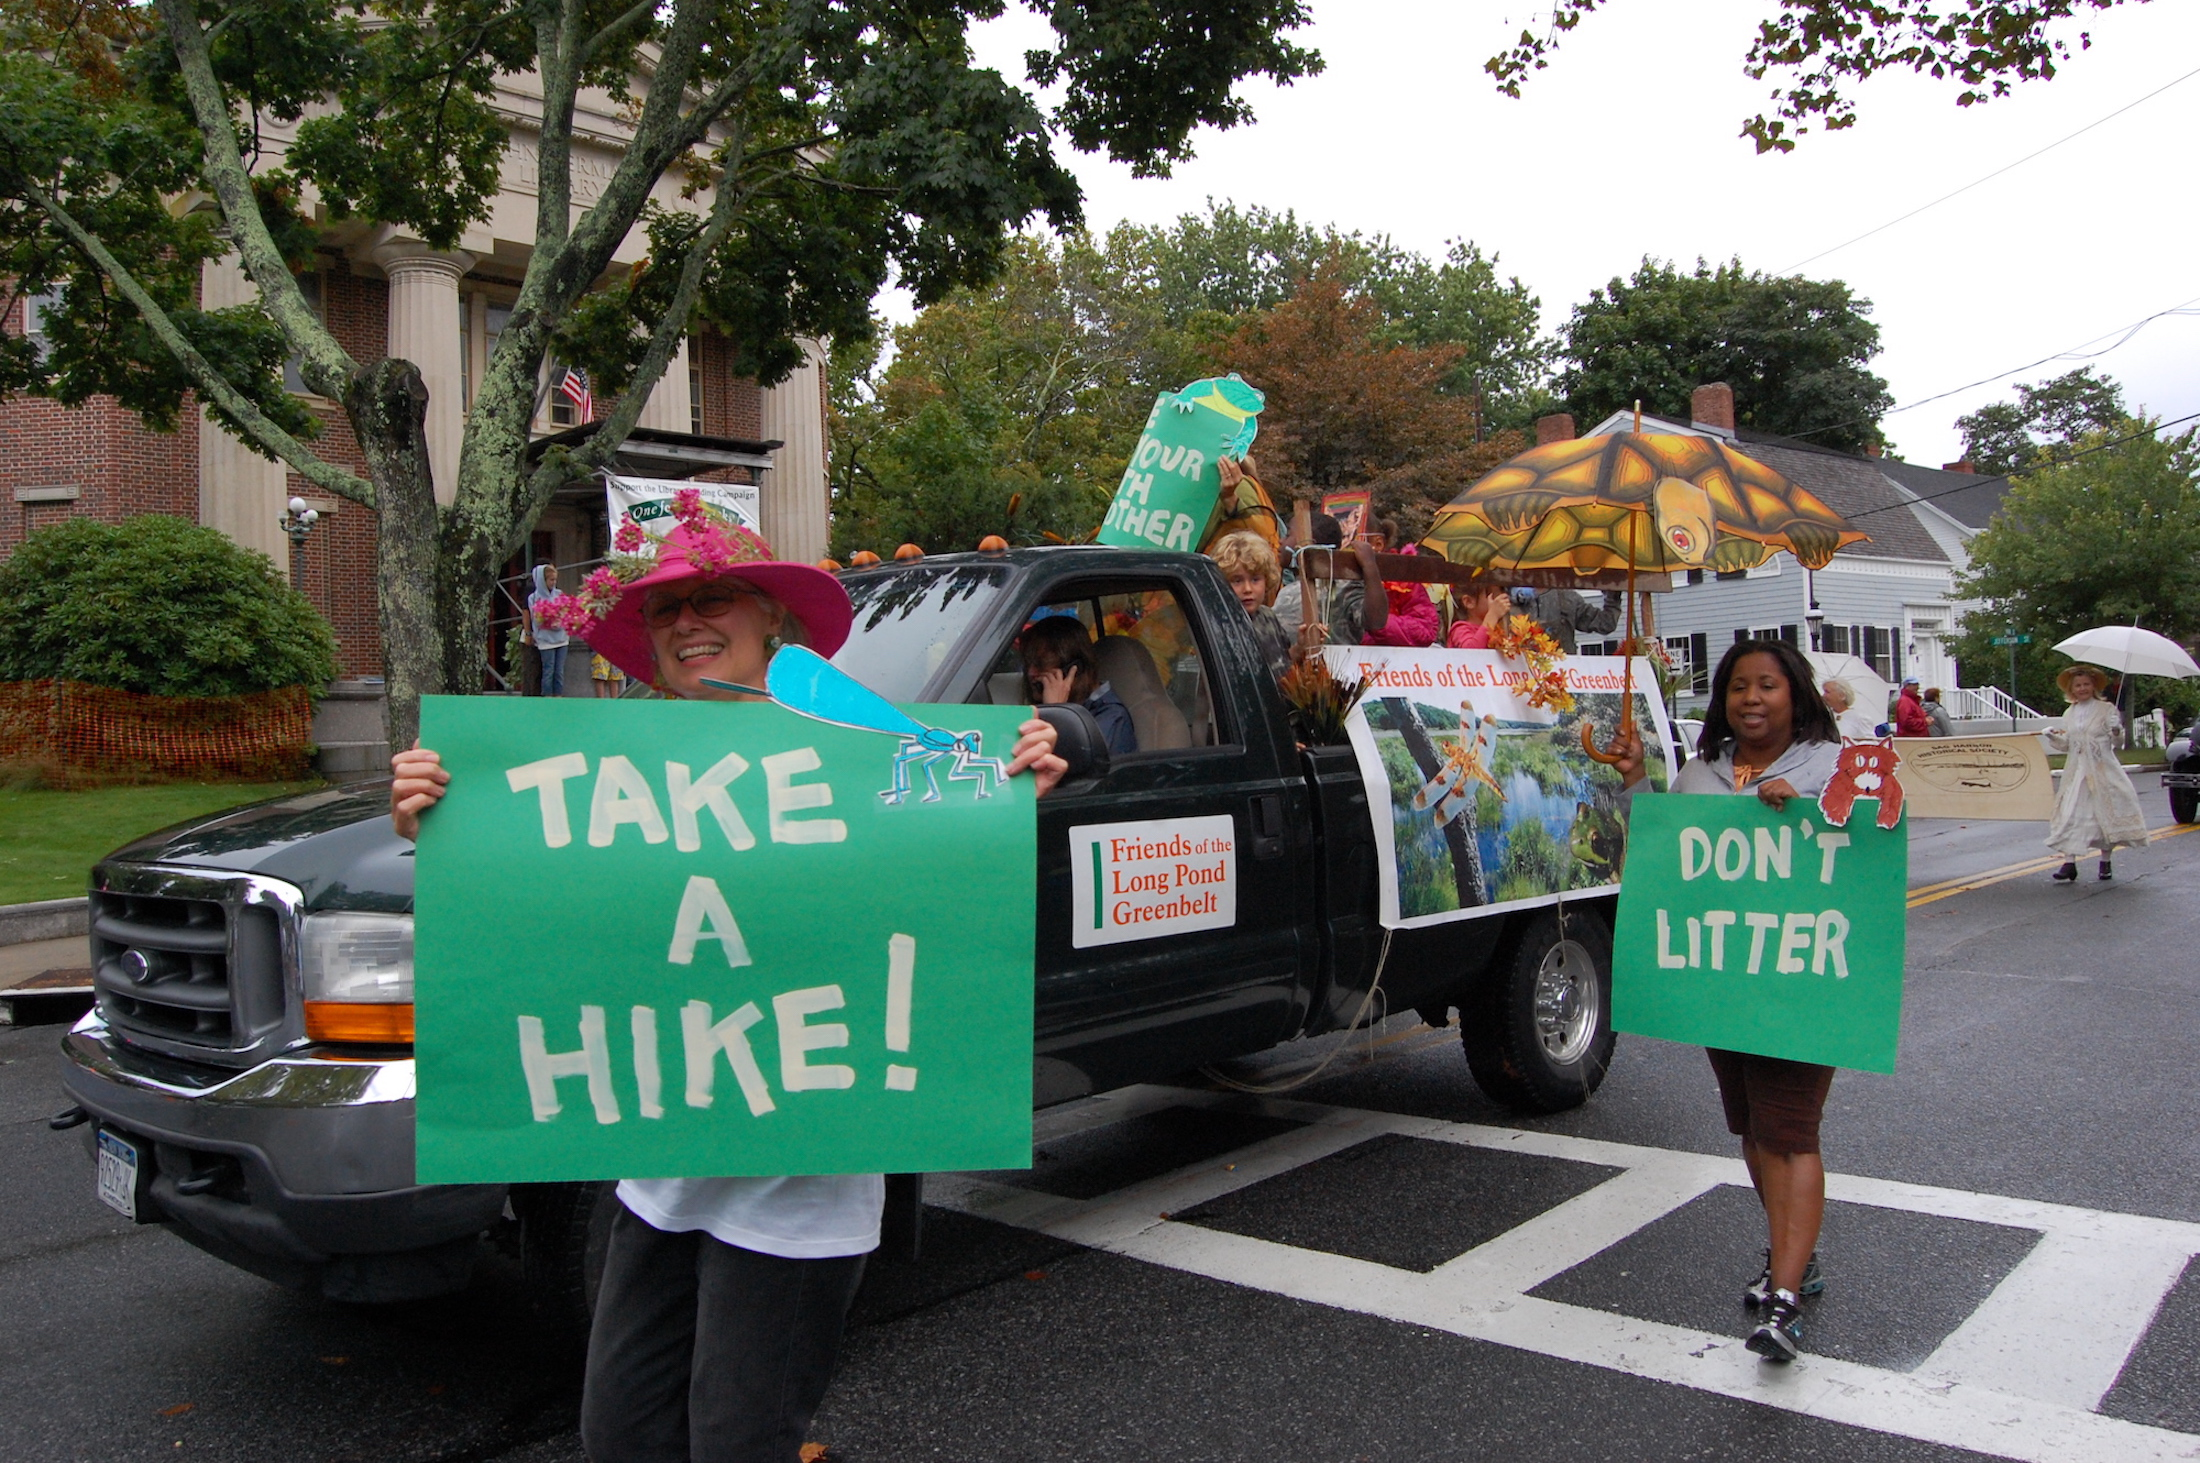 Take a hike from parade